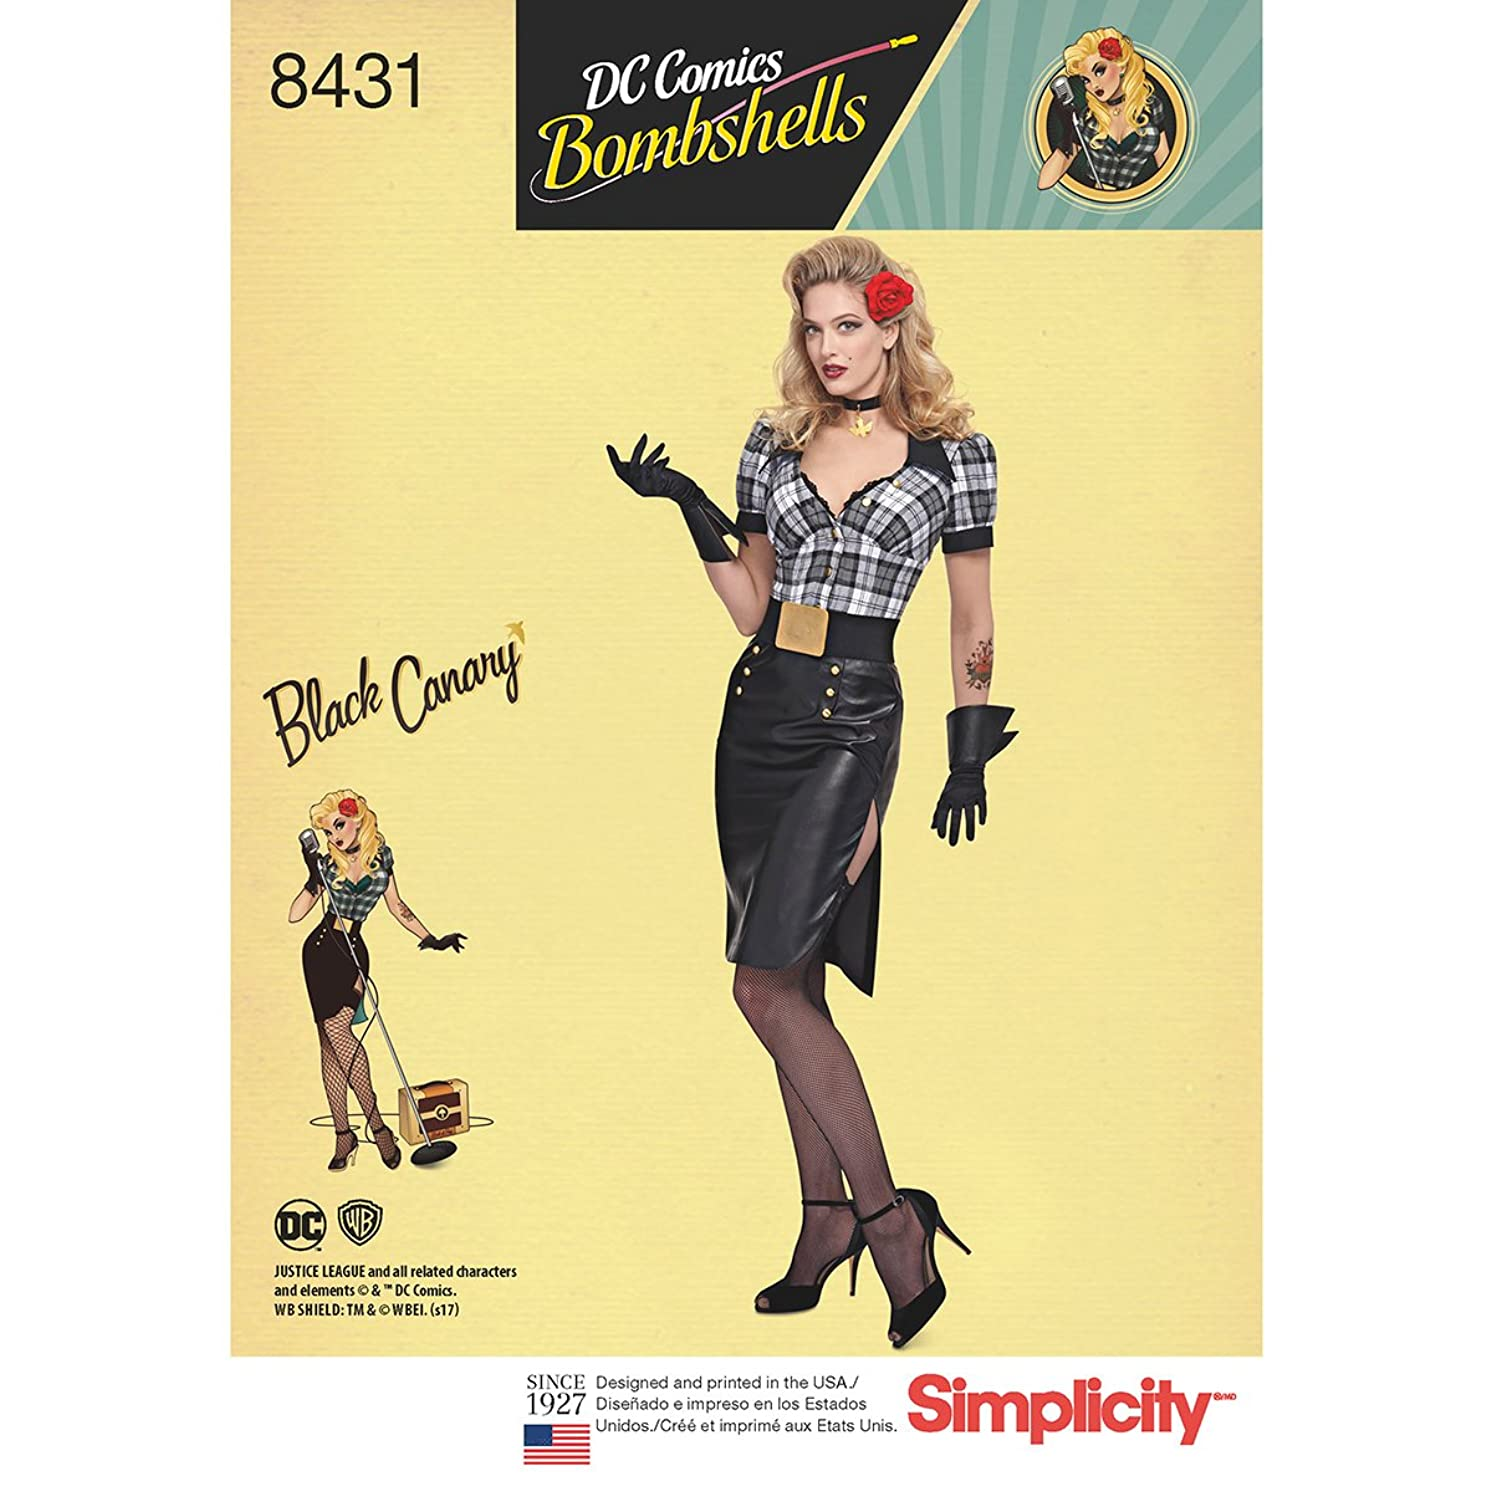 Simplicity 8431 Women's DC Comics Bombshell Black Canary Costume Sewing Pattern, Size 16-24